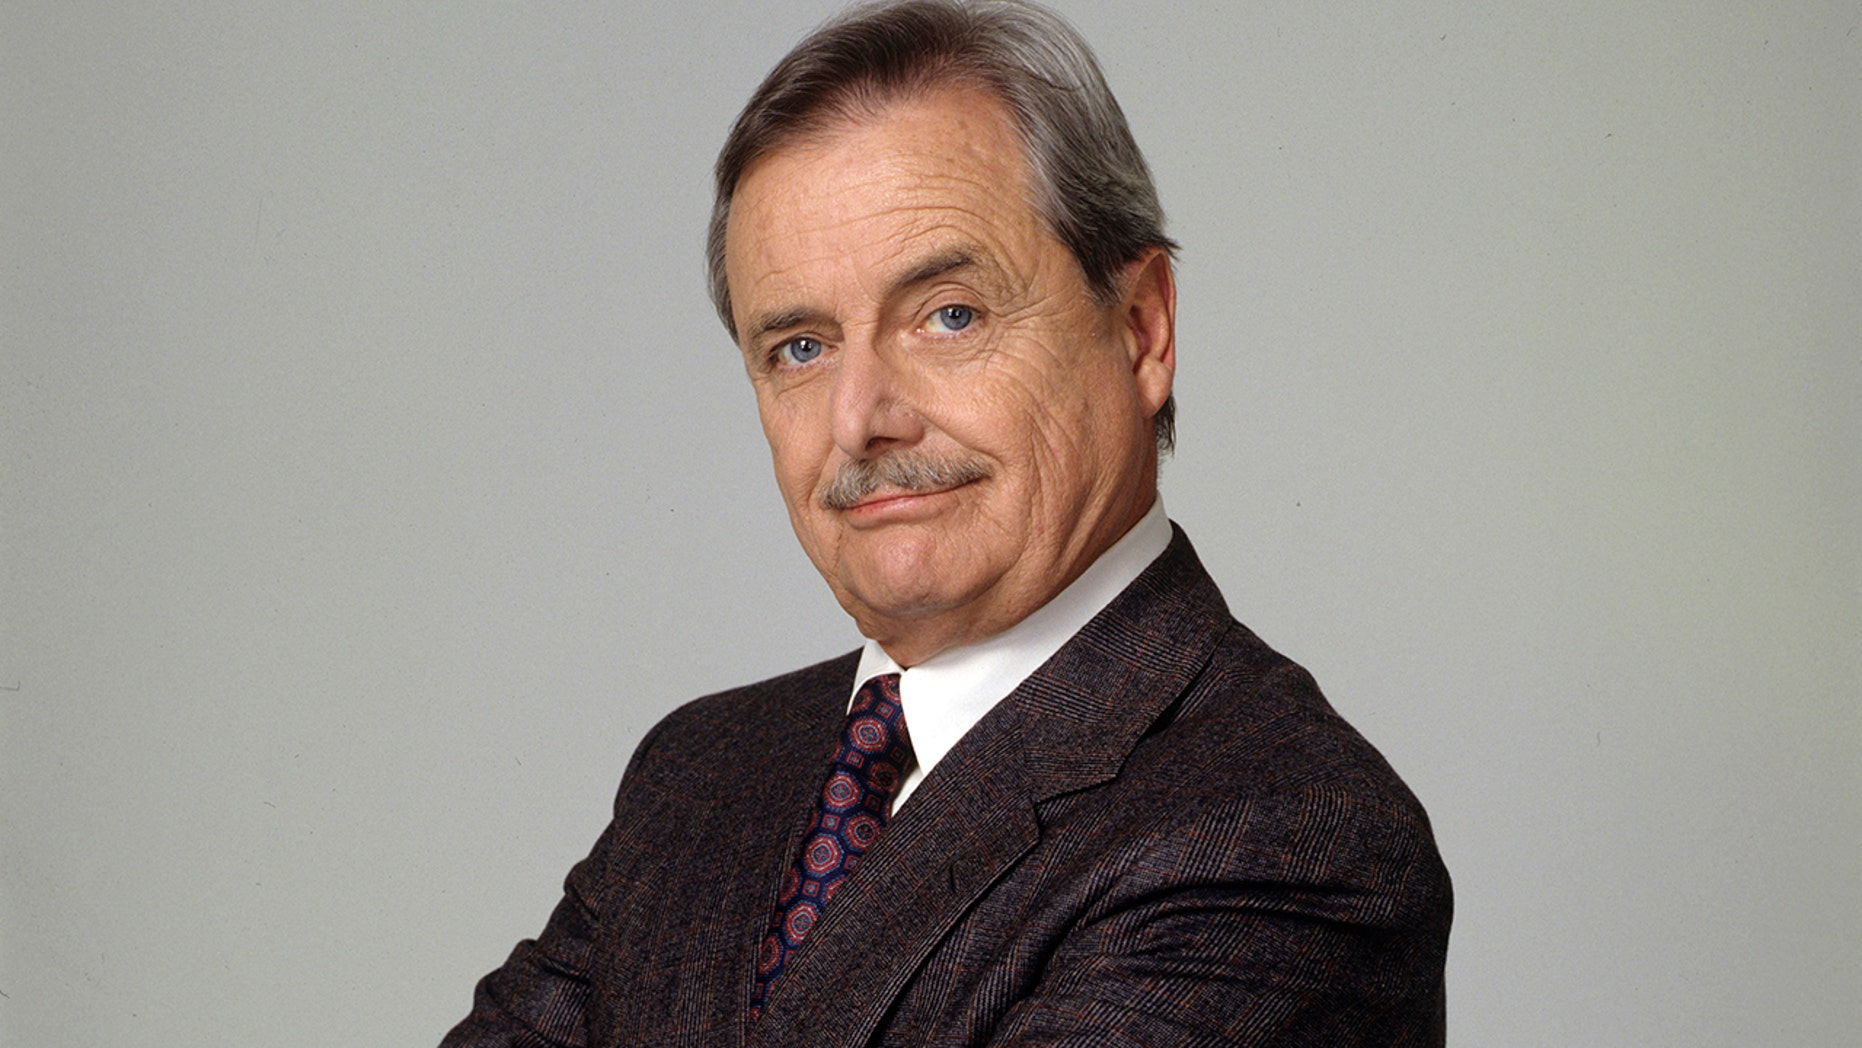 Actor William Daniels foiled an attempted robbery at his home on Saturday.